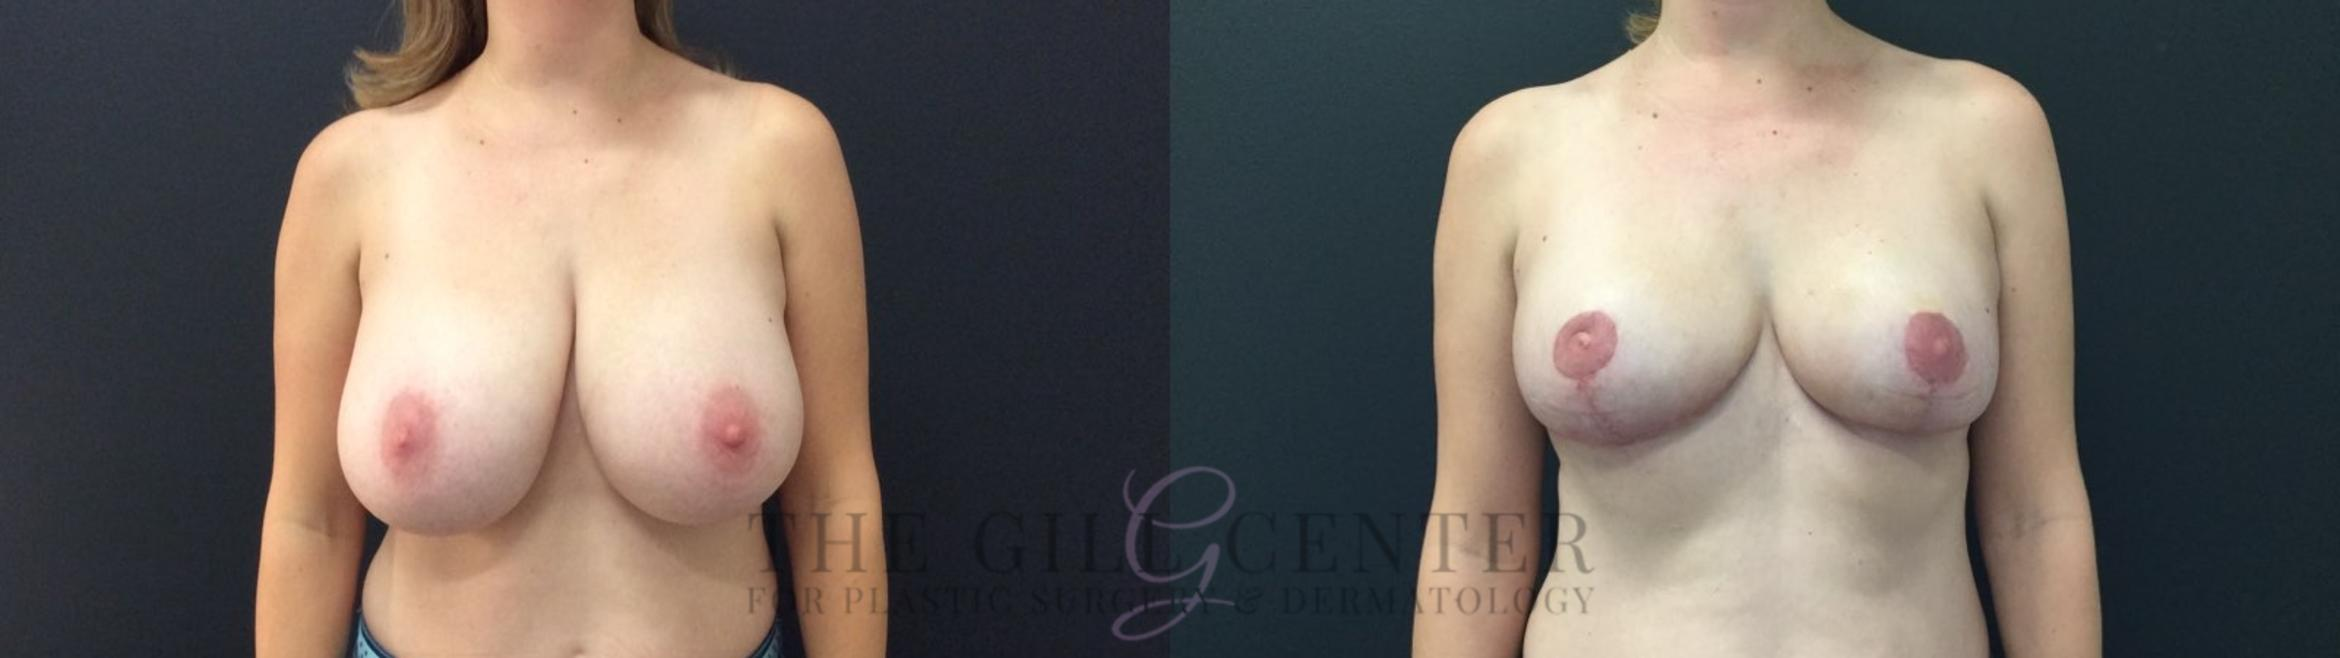 Breast Reduction Case 423 Before & After Front | The Woodlands, TX | The Gill Center for Plastic Surgery and Dermatology